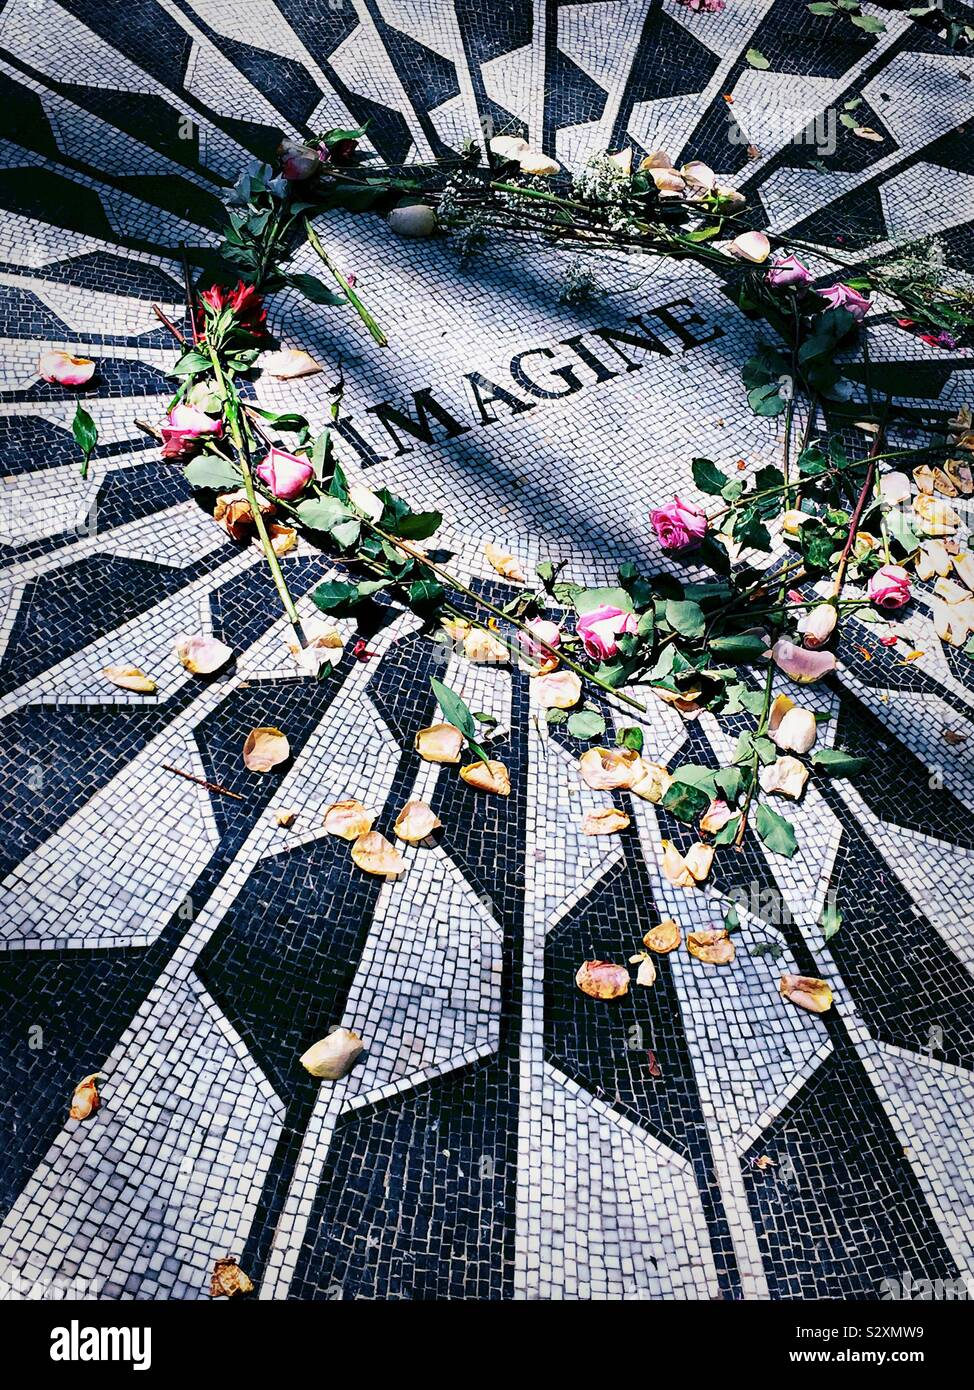 Mosaico Strawberry Fields, Central Park, Nueva York, EE.UU. Foto de stock